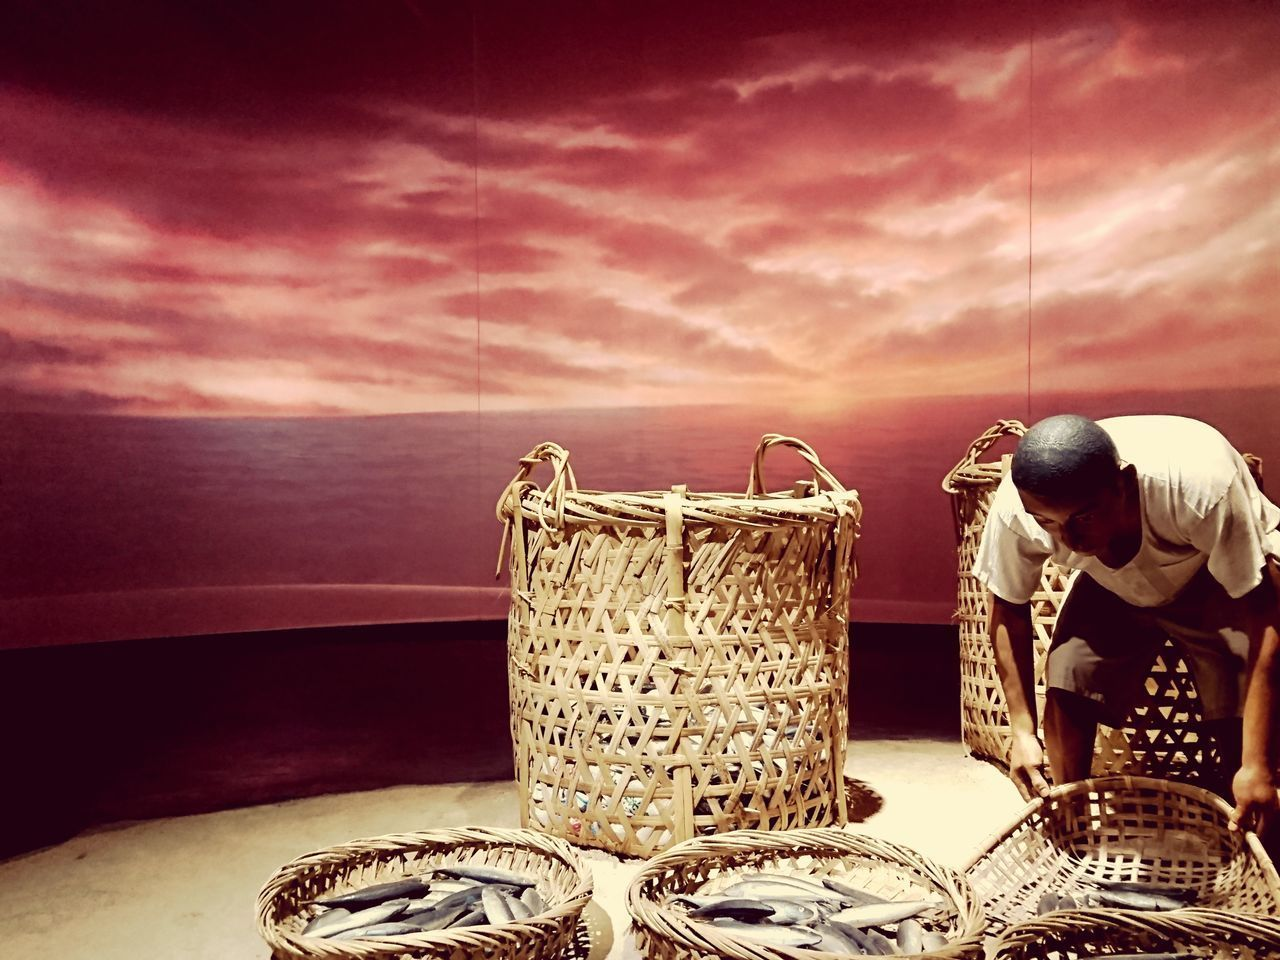 sea, basket, sky, cloud - sky, water, horizon, horizon over water, one person, occupation, real people, container, nature, sunset, holding, wicker, working, men, fishing, fishing industry, fisherman